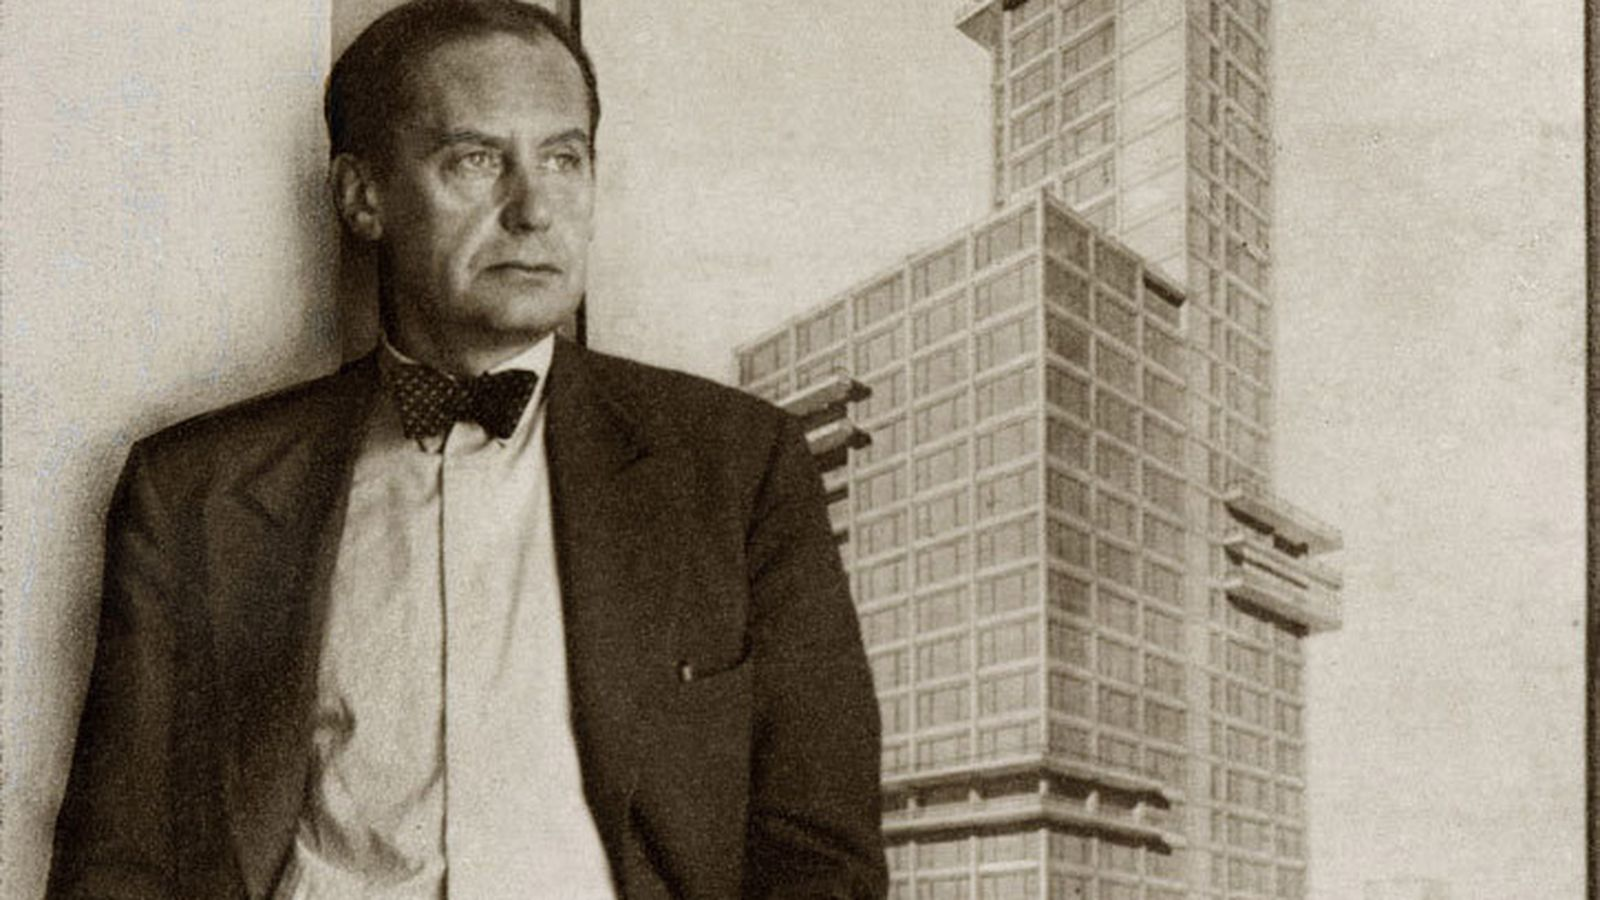 25 Famous quotes by famous architects - Sheet6